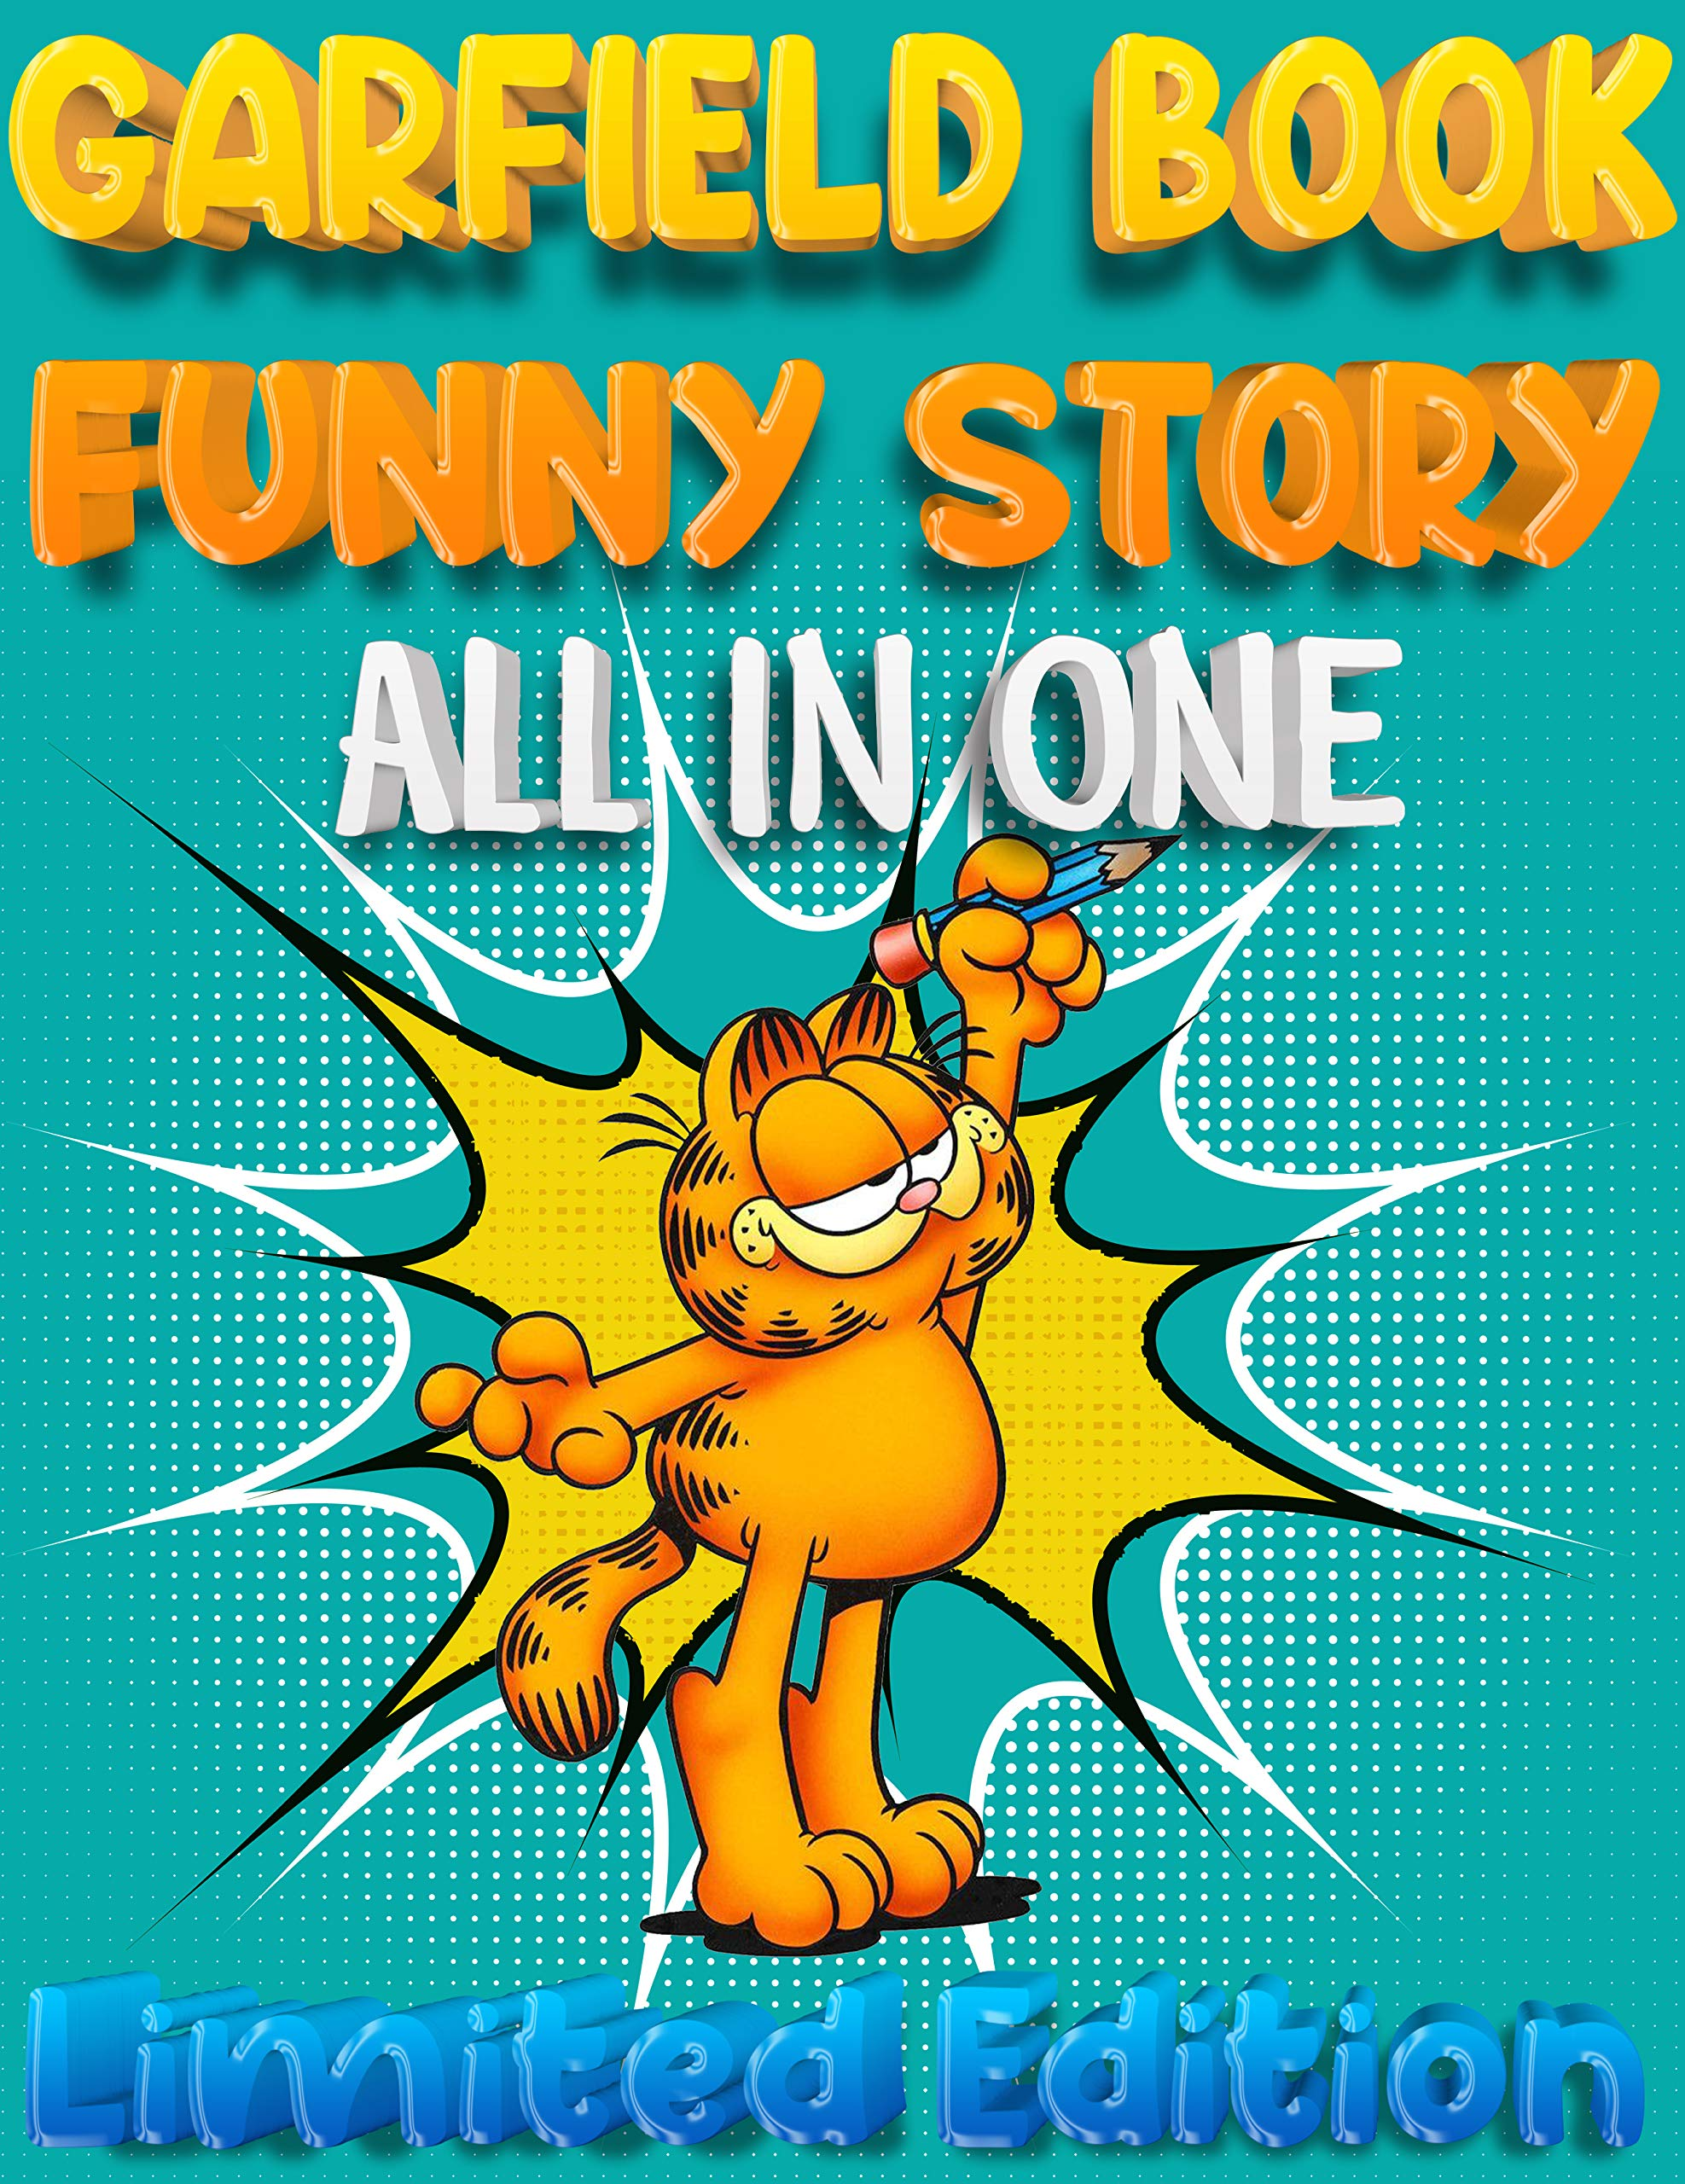 Best Childrens Books Full Series Garfield Kid Limited Edition: Fat Cat Garfield All in One